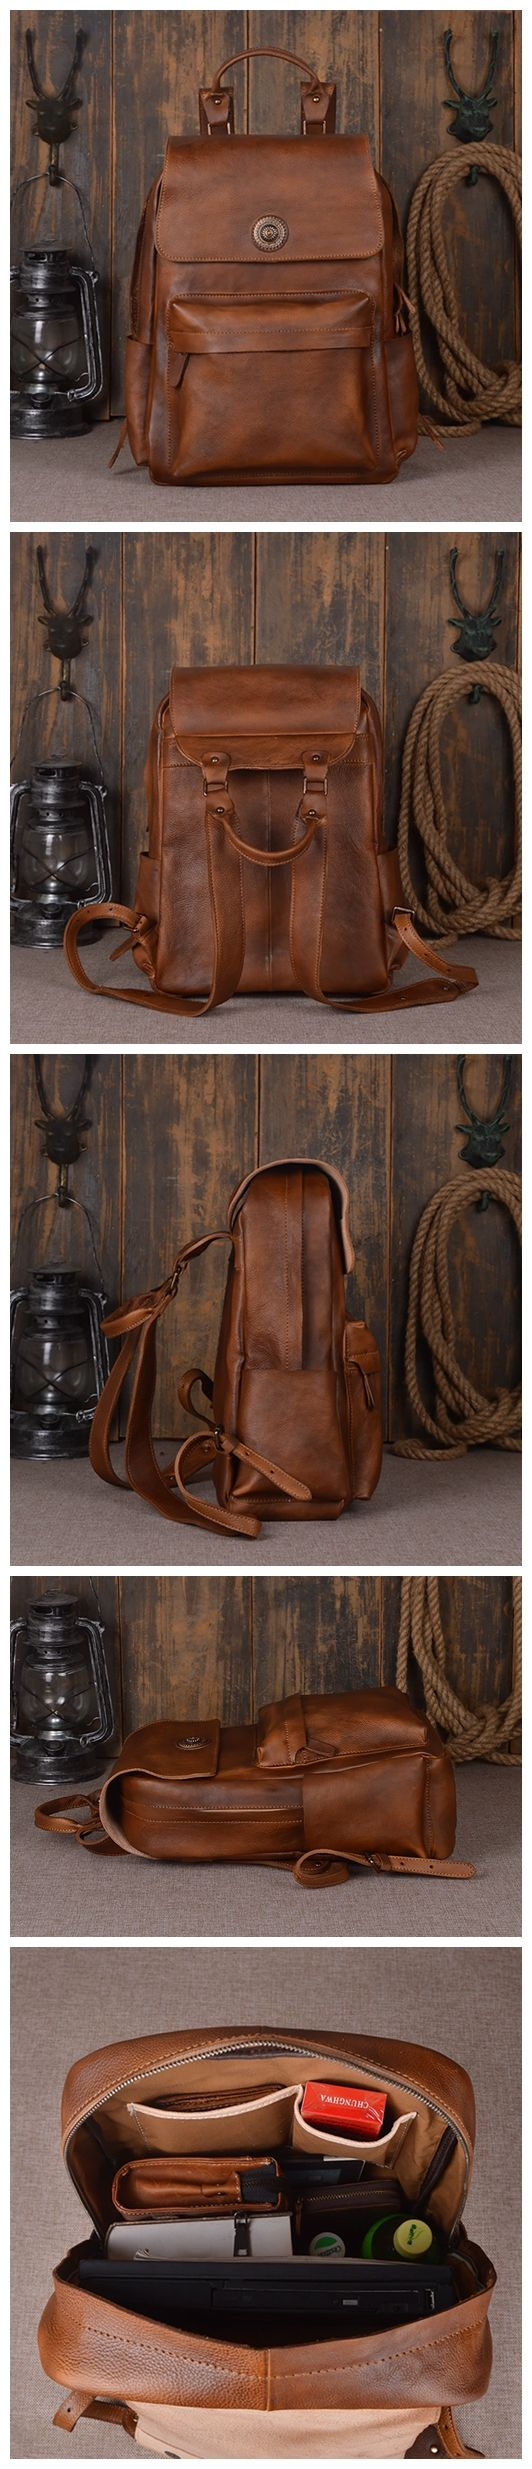 HANDMADE ITALIAN TANNED LEATHER BACKPACK SCHOOL BACKPACK CASUAL BACKPACK COOL BACKPACK FOR TEENS